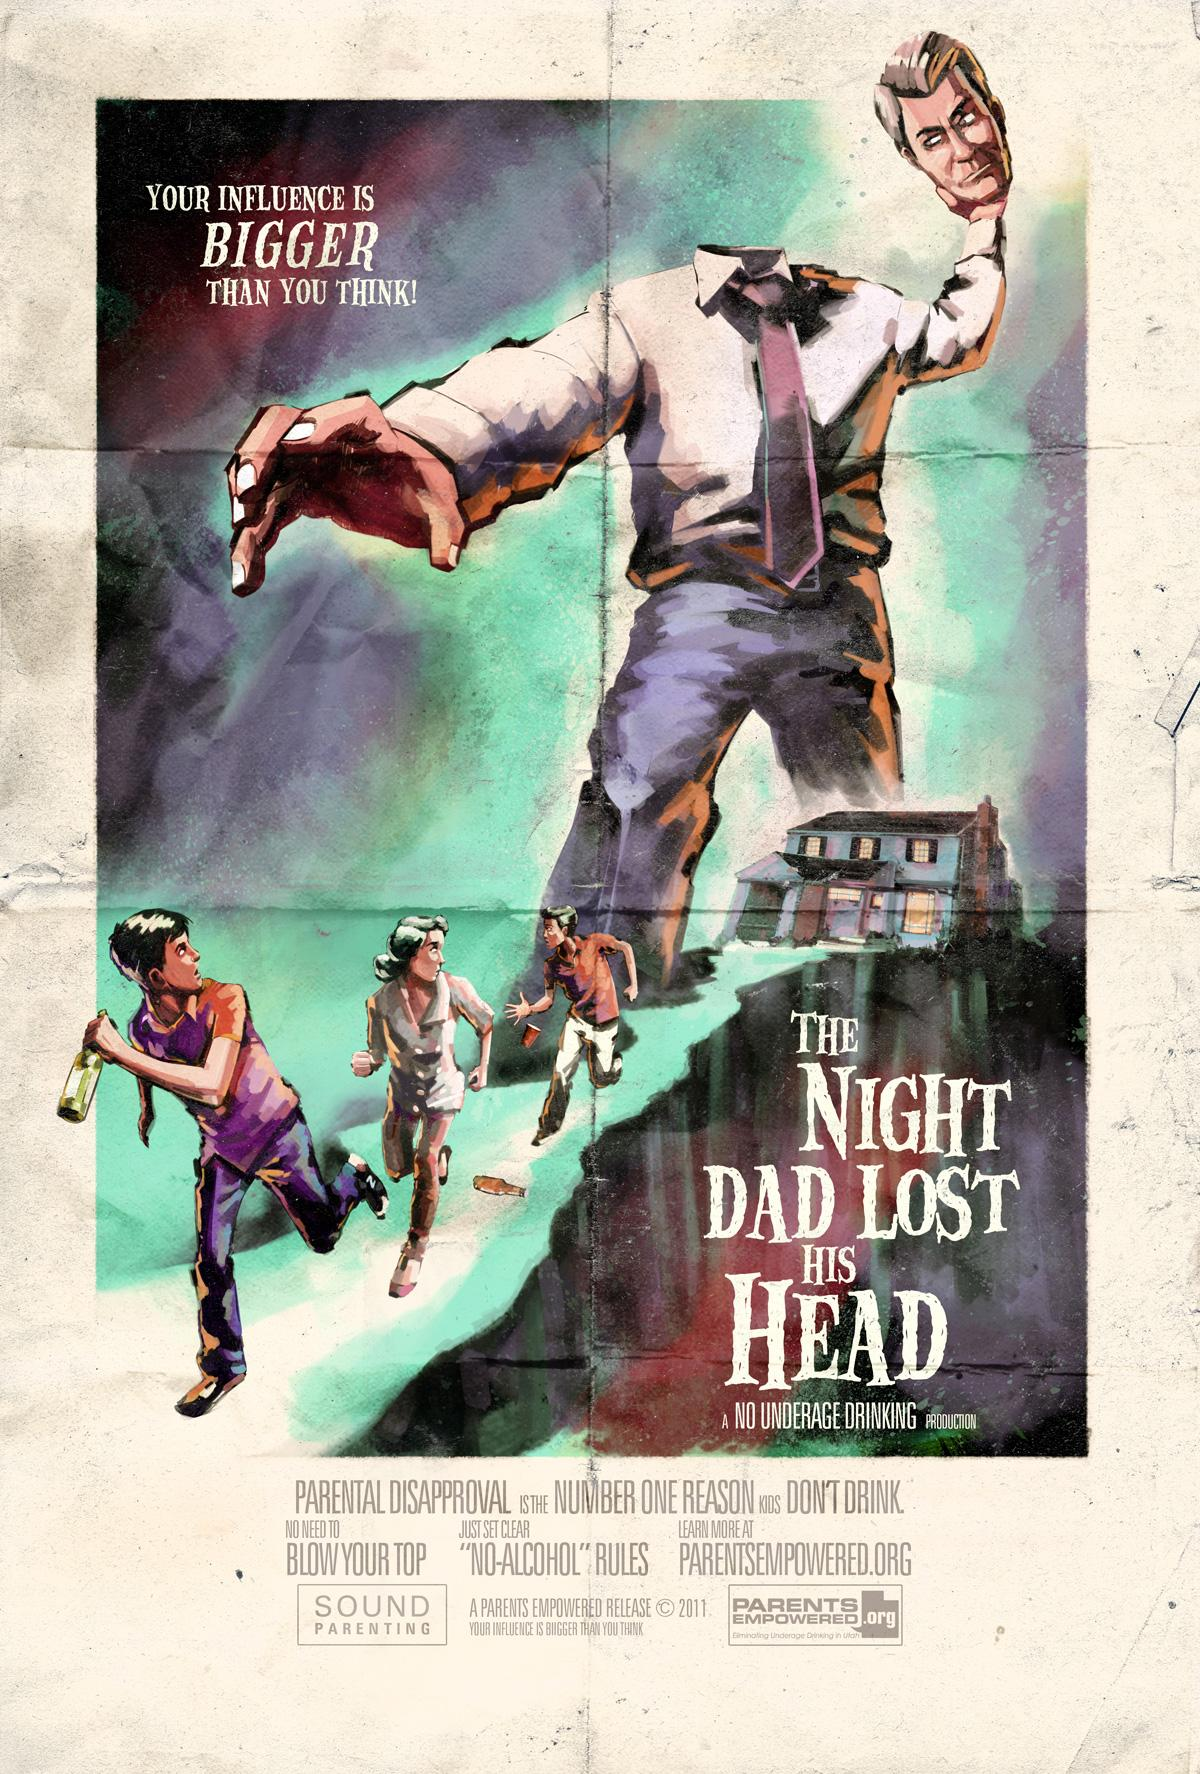 Parents Empowered Outdoor Ad -  Your Influence Is Bigger Than You Think, The Night Dad Lost His Head